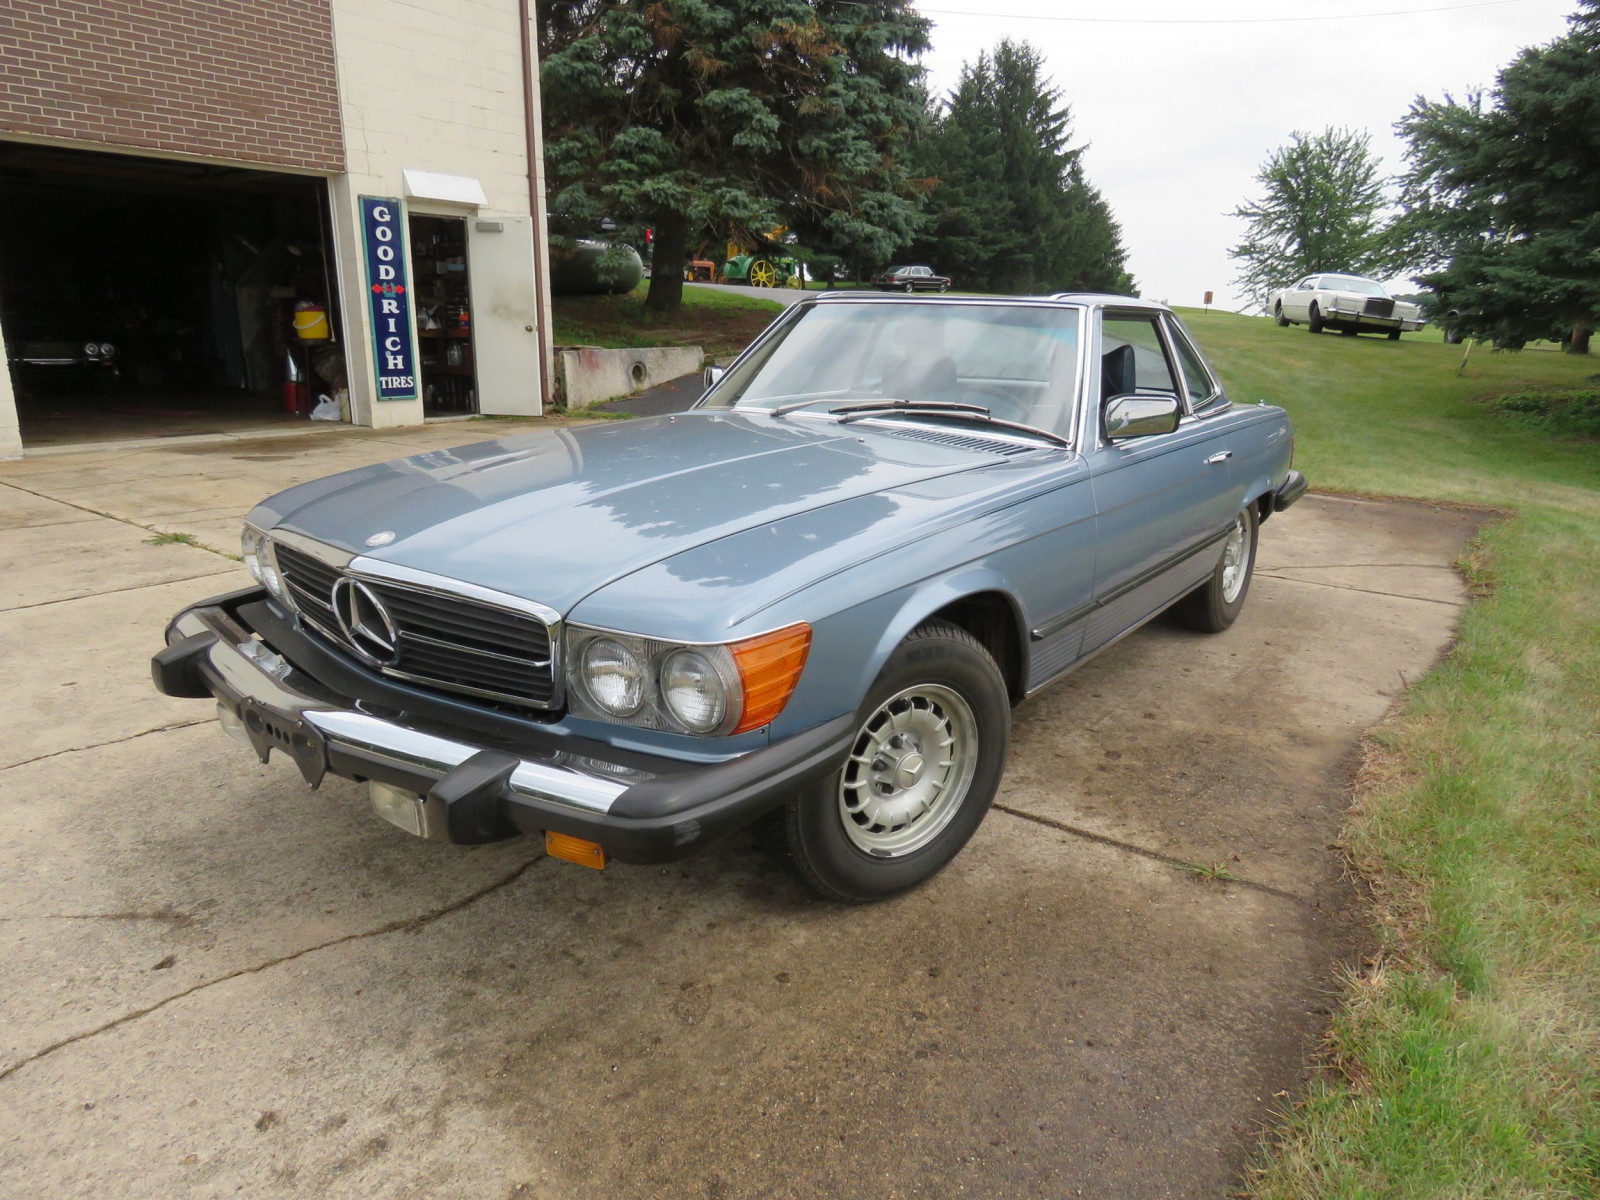 1979 Mercedes 450SL Coupe - Image 3